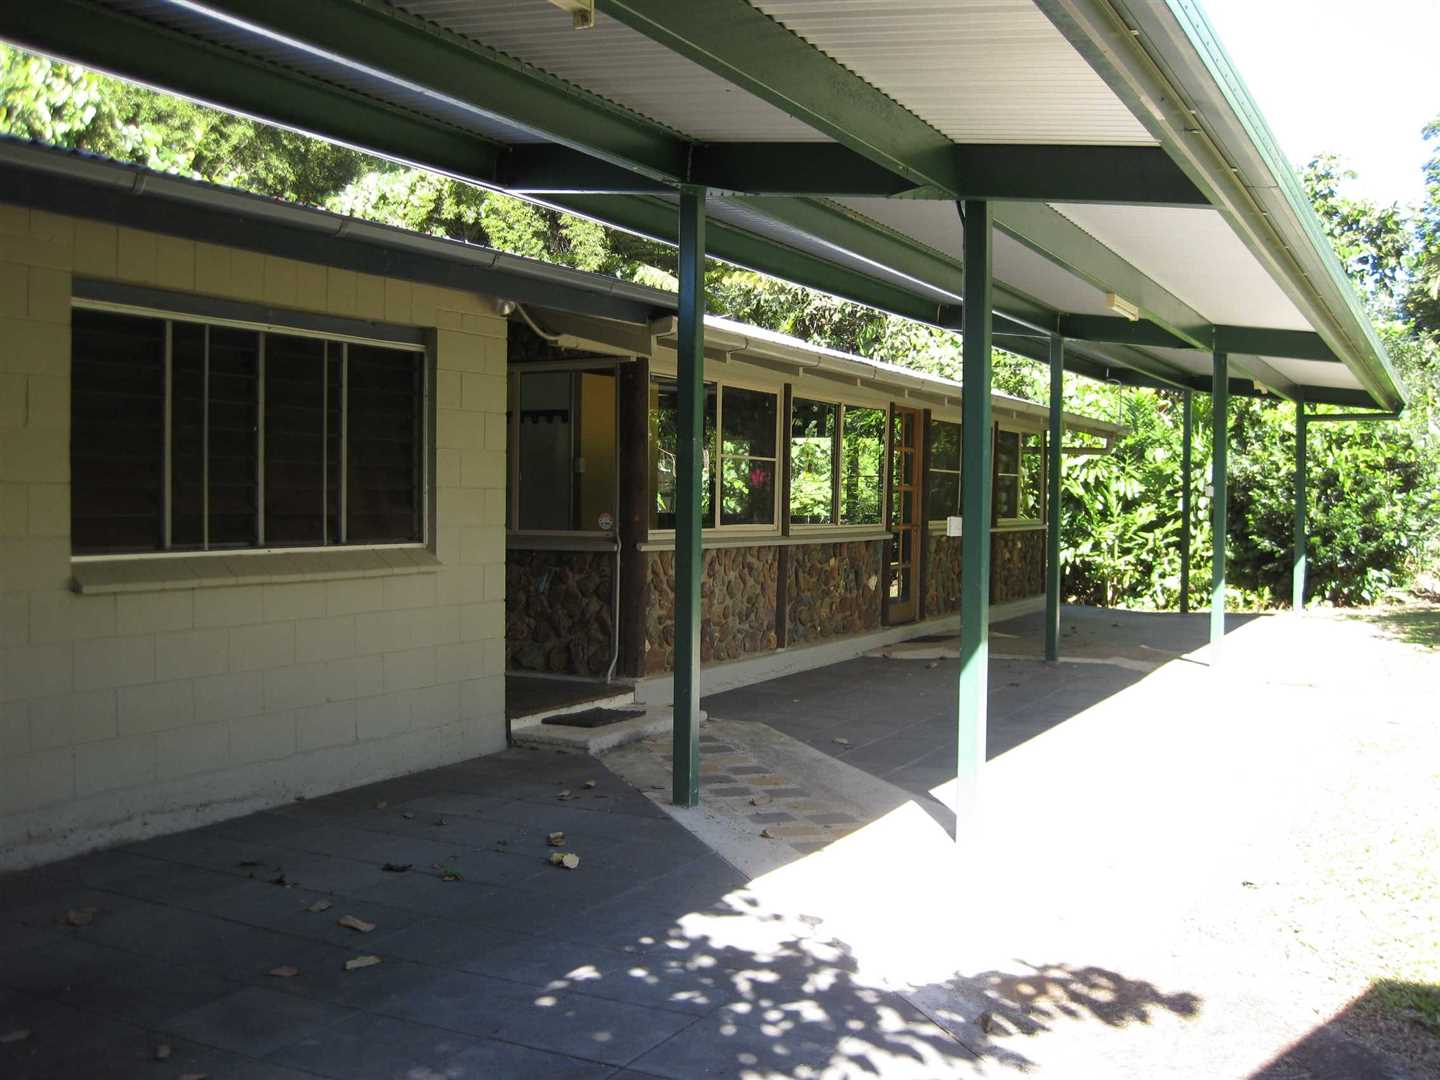 Outside view of part of home and front verandah